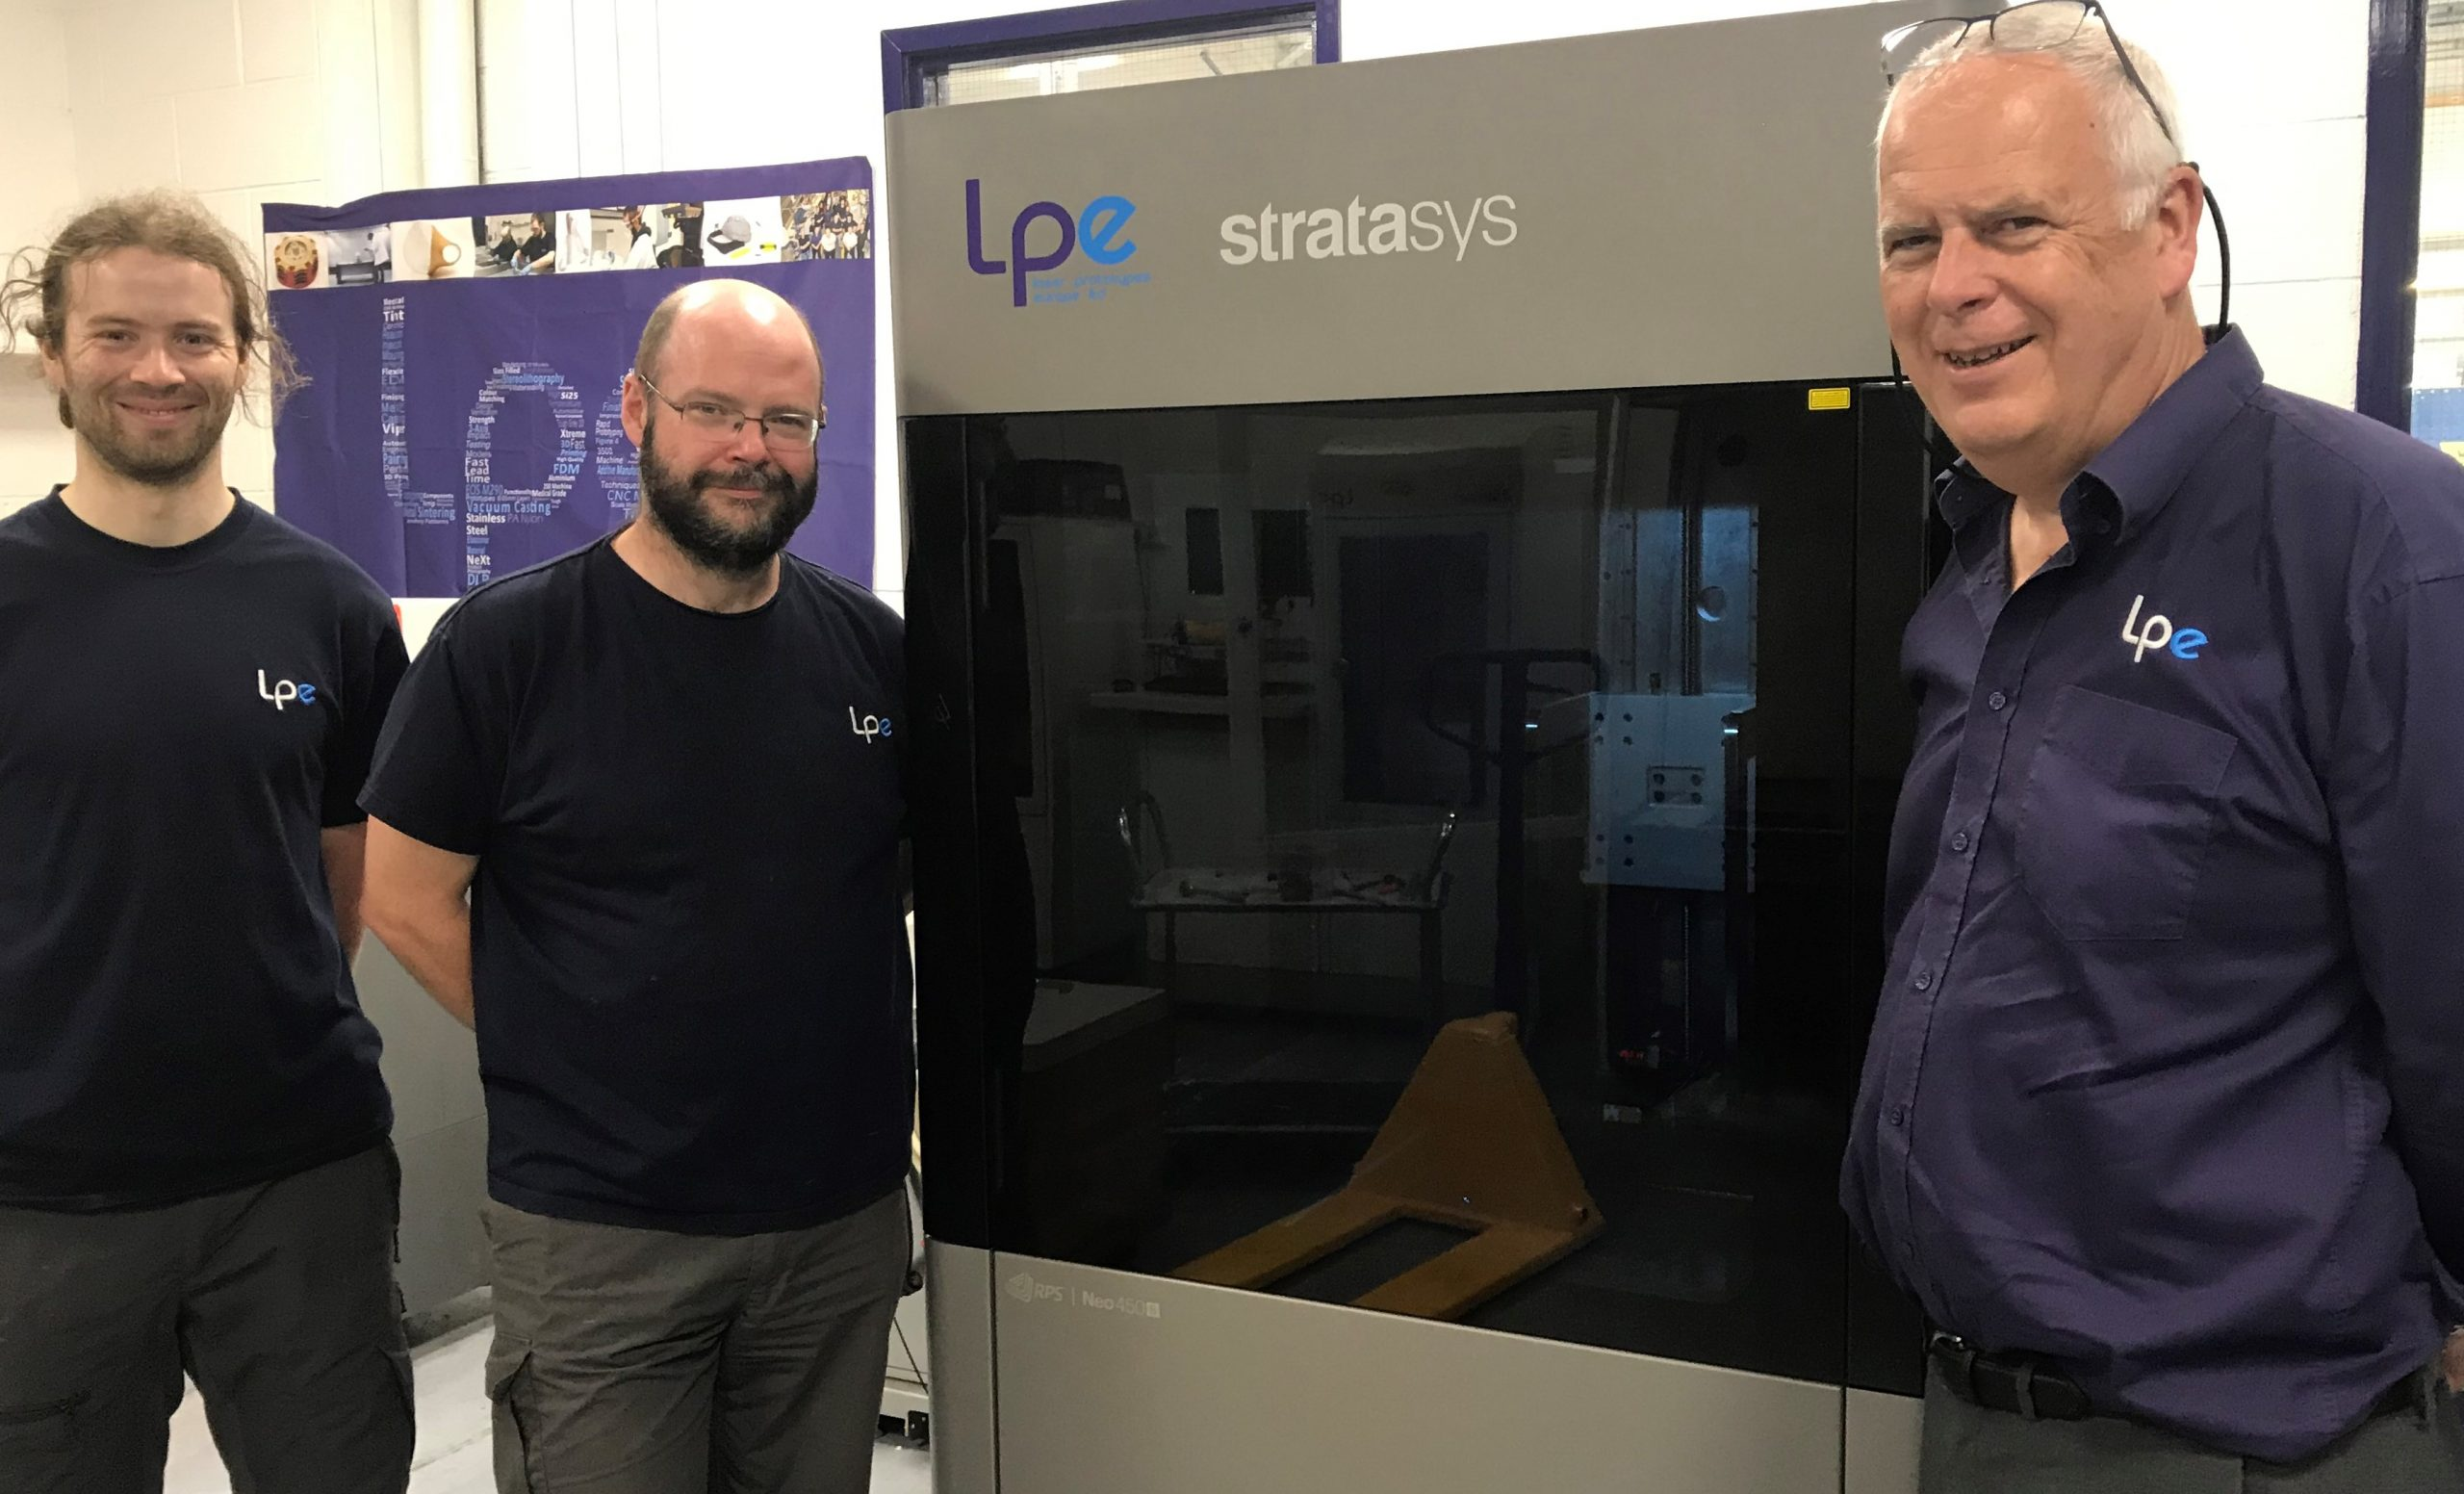 LPE has bolstered its capabilities with a Neo450s 3D printer from Stratasys. Photo via Stratasys.